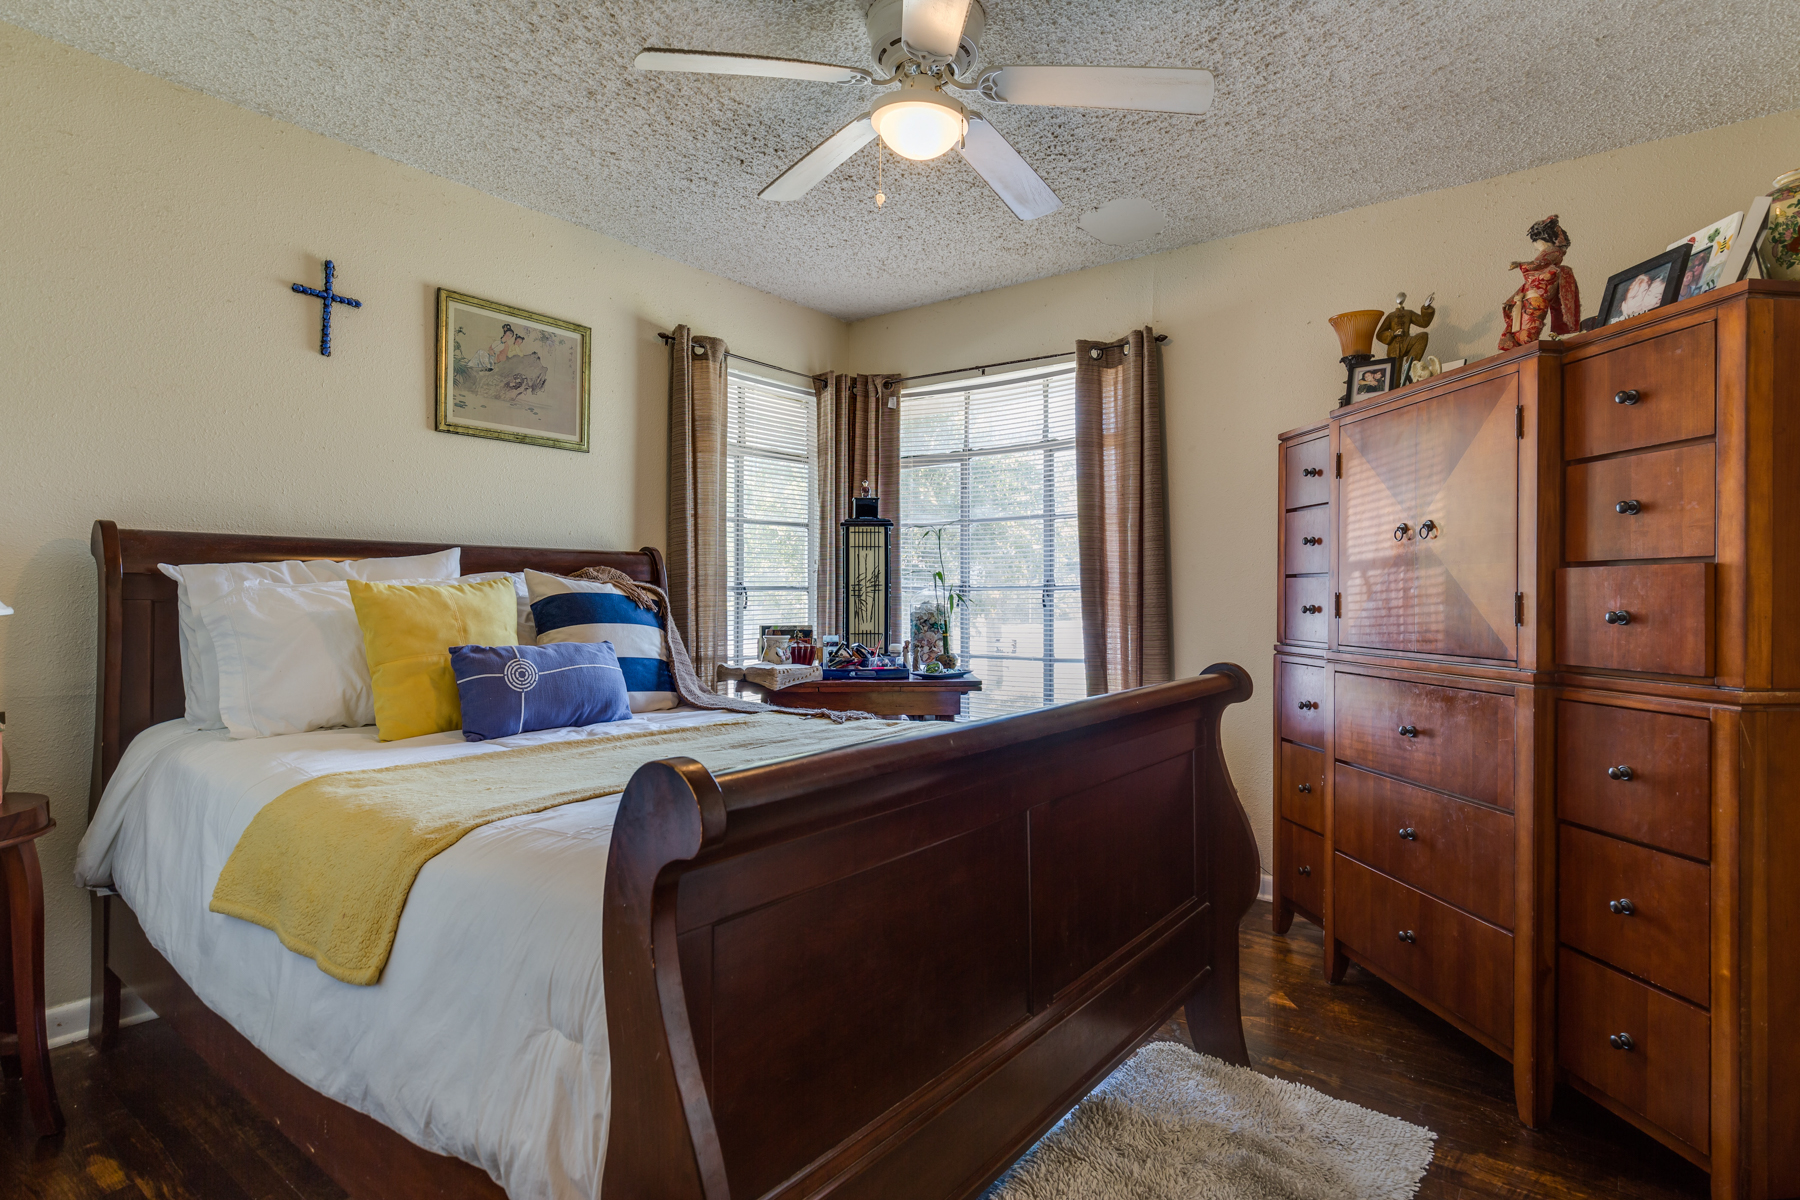 Additional photo for property listing at Great Property in Starlit Hills 303 Burwood Ln San Antonio, Texas 78213 United States